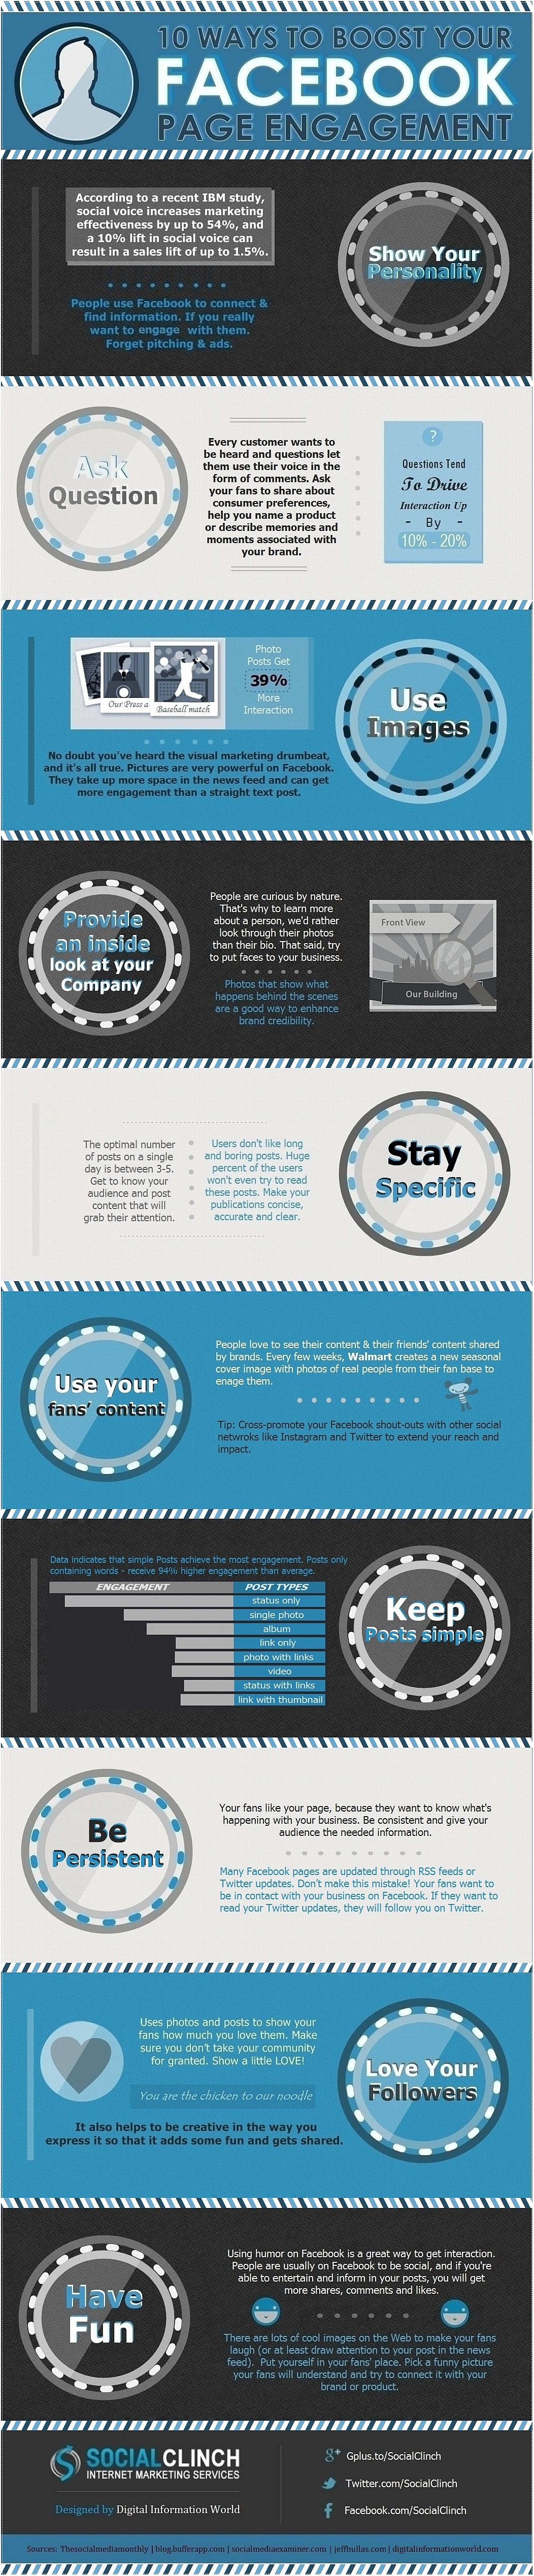 10 Ways To Boost Your Facebook Page Engagement [infographic]